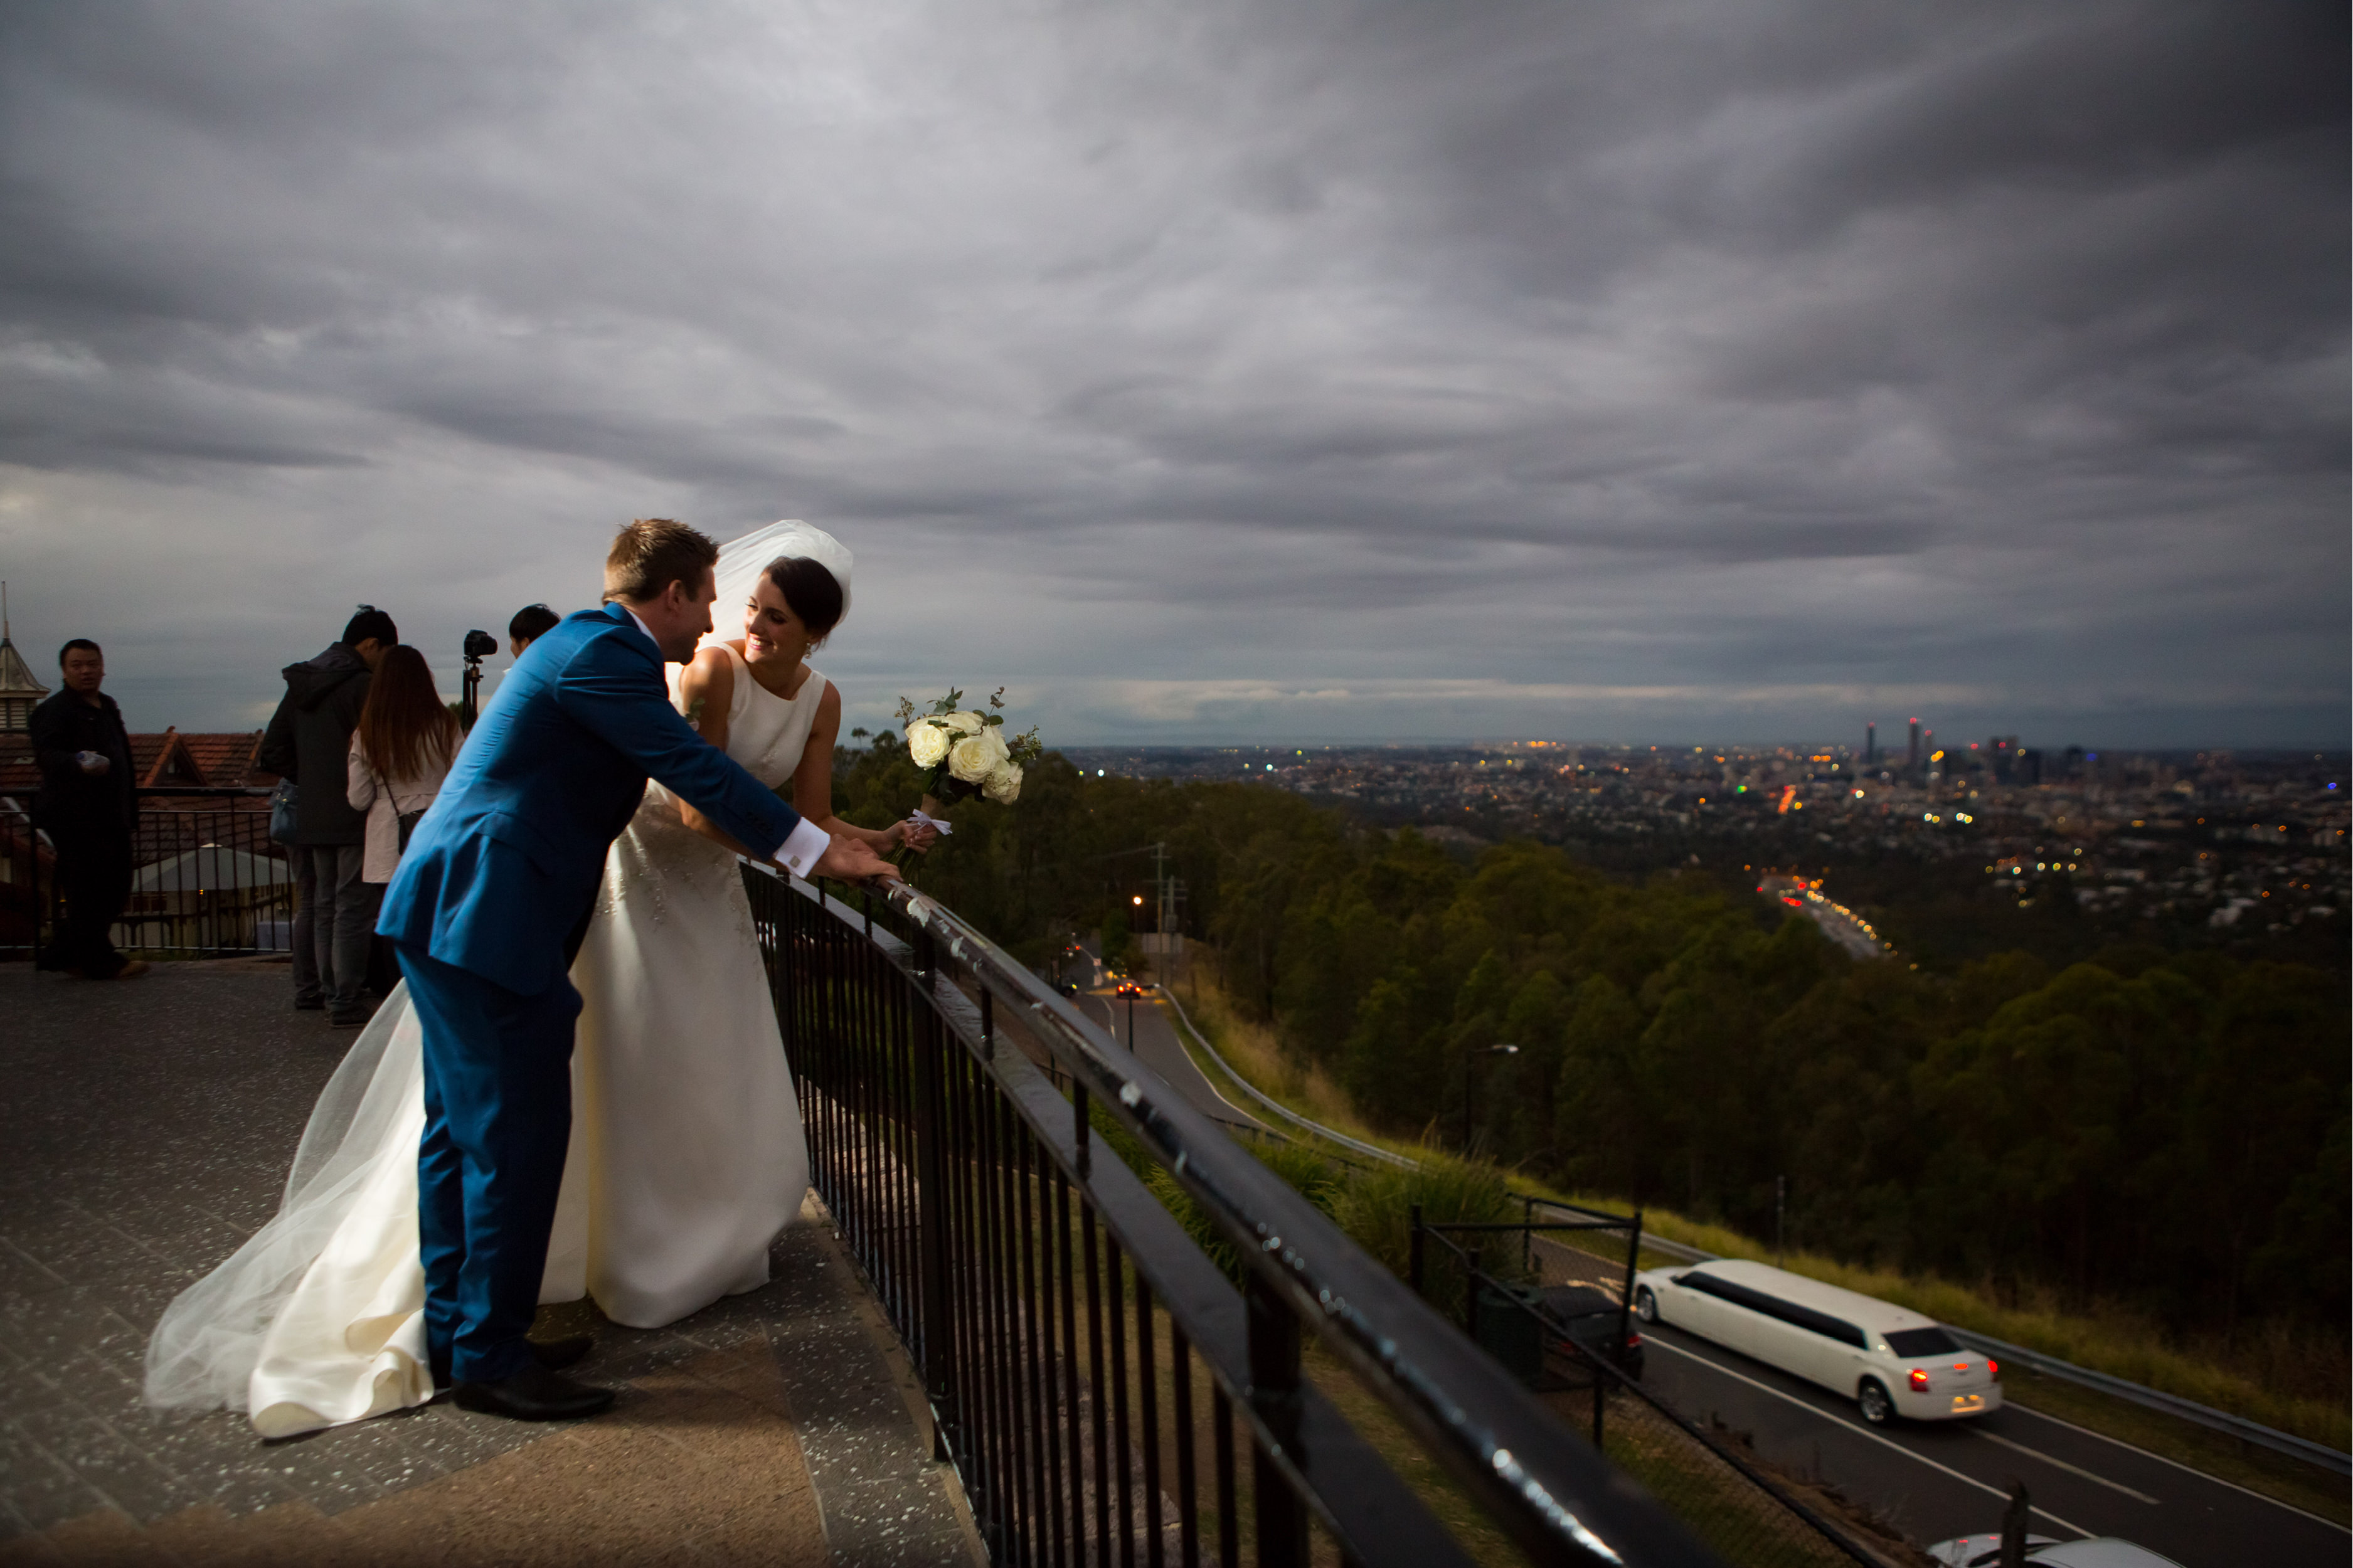 Emma_cleary_photography Destination wedding18